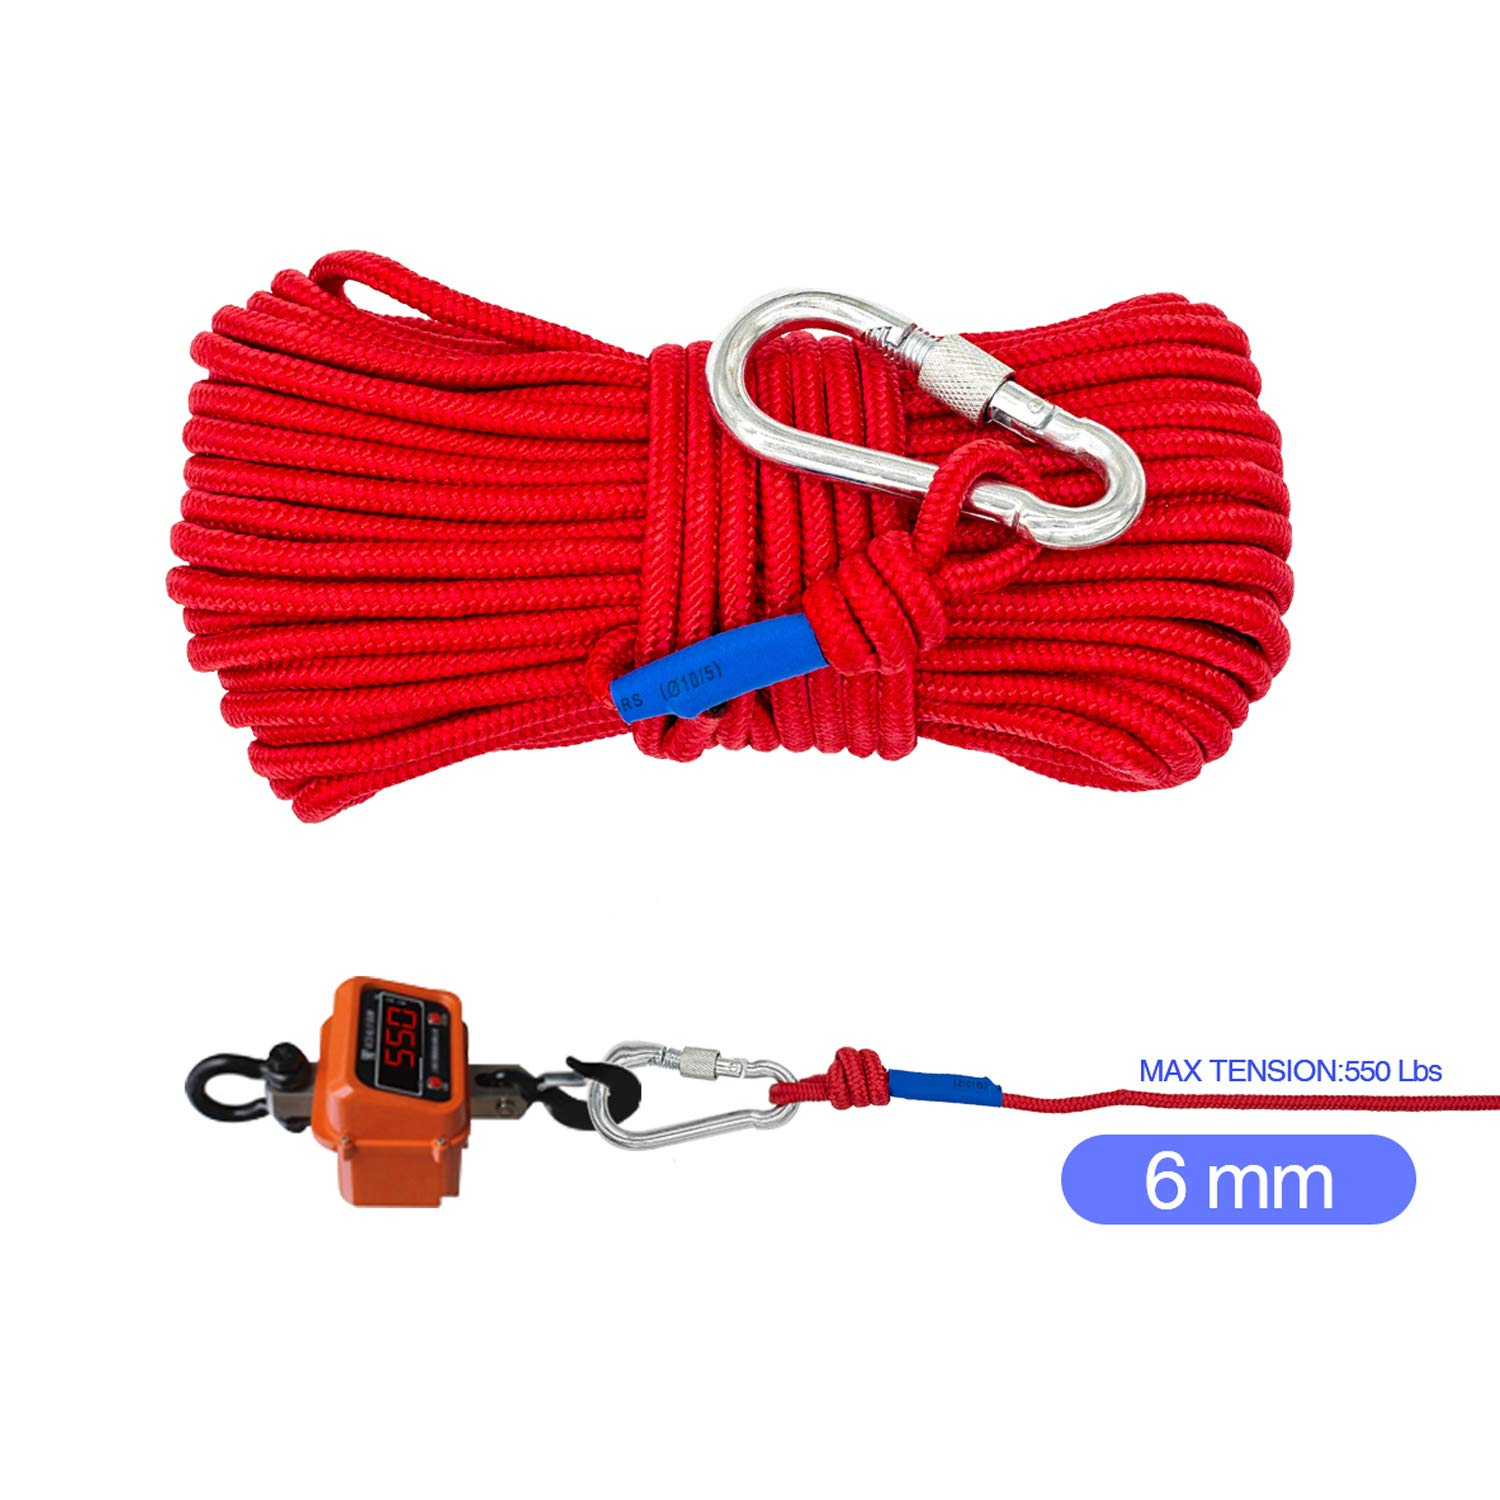 Fishing Magnet with 66ft Rope & Glove, Wukong 760LB Pulling Force Super Strong Neodymium Magnet with Heavy Duty Rope & Carabiner for Magnet Fishing and Retrieving in River - 67mm Diameter by Wukong (Image #9)